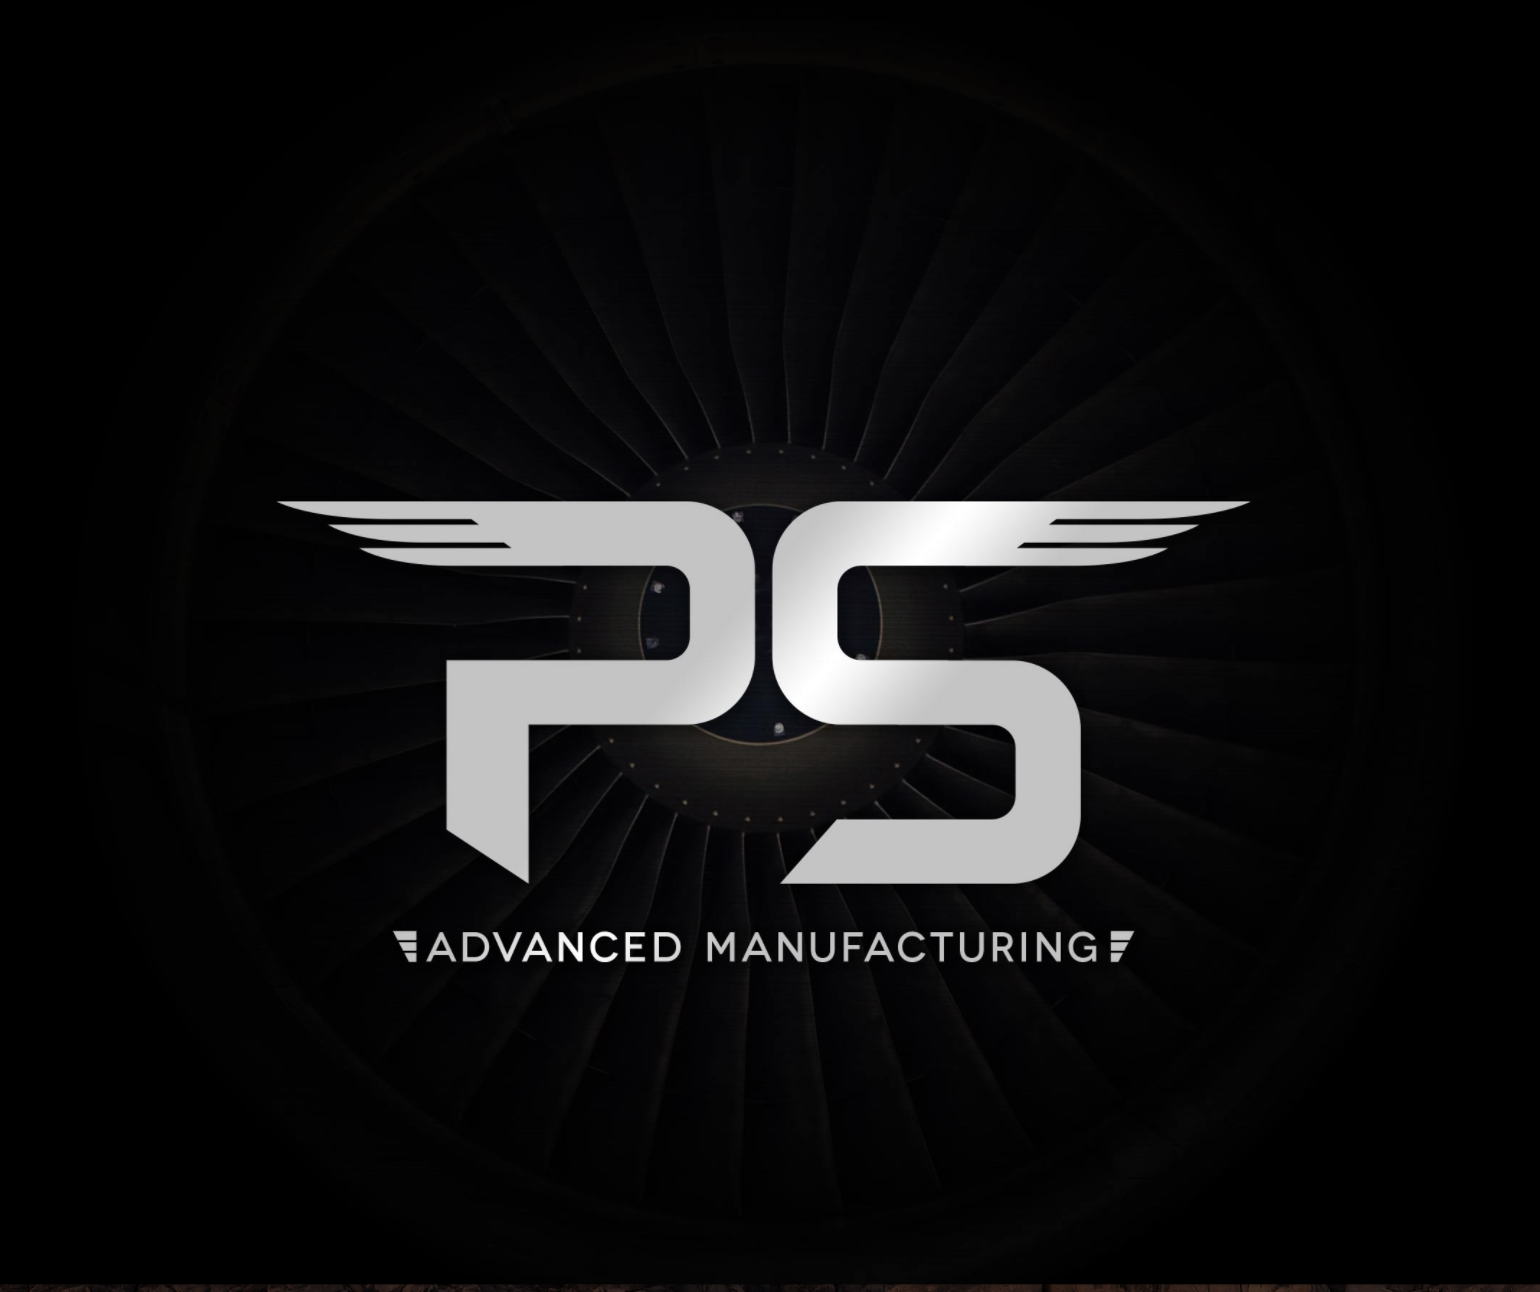 PS ADVANCED MANUFACTURING